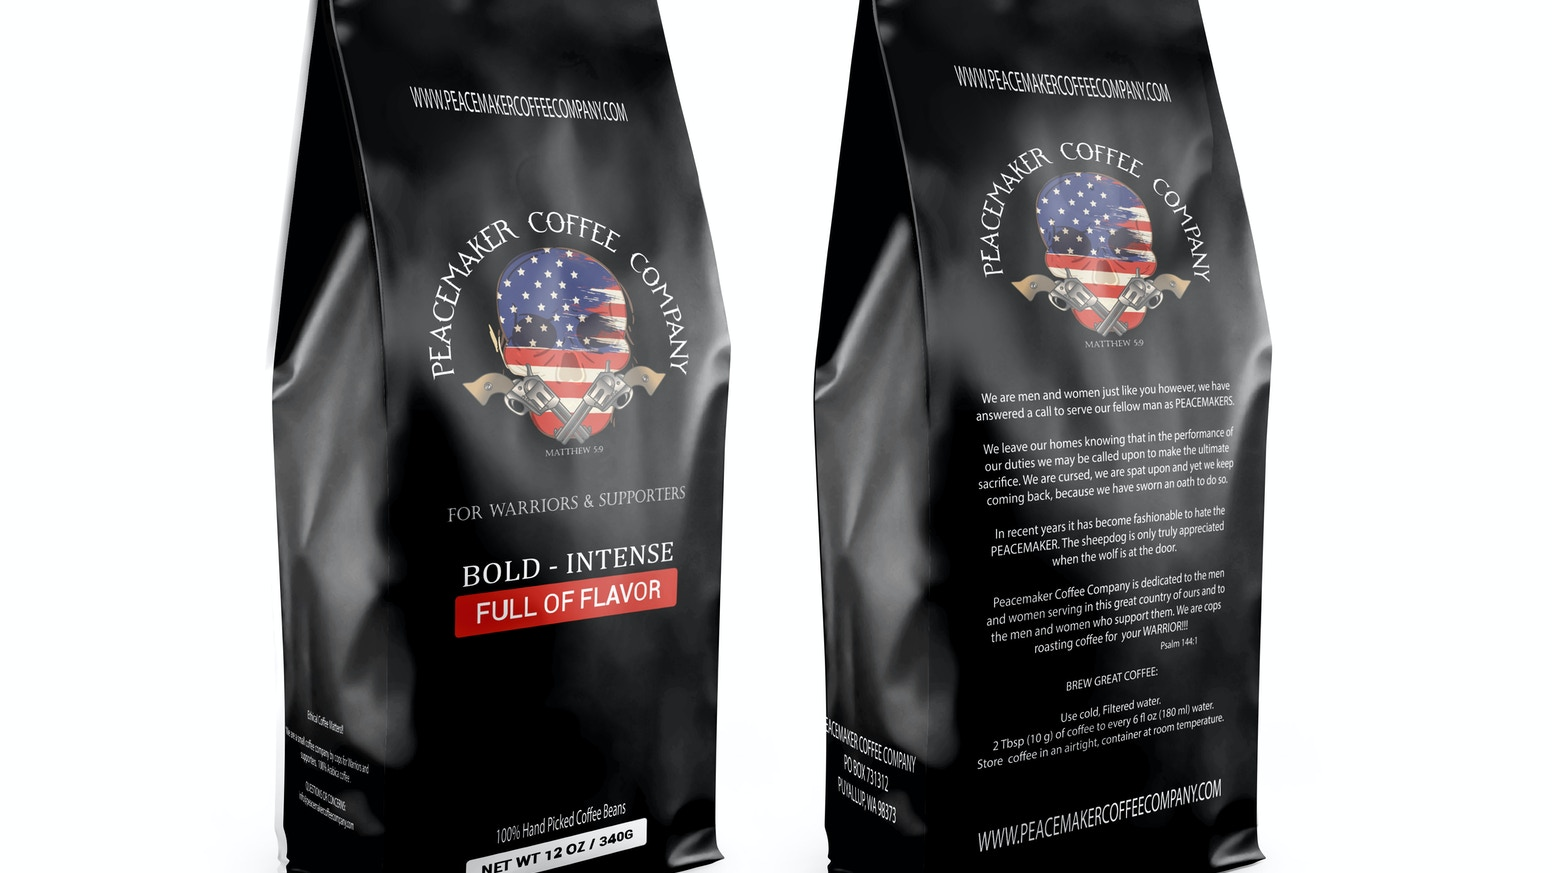 Peacemaker Coffee Company - Police Officer Owned & Operated